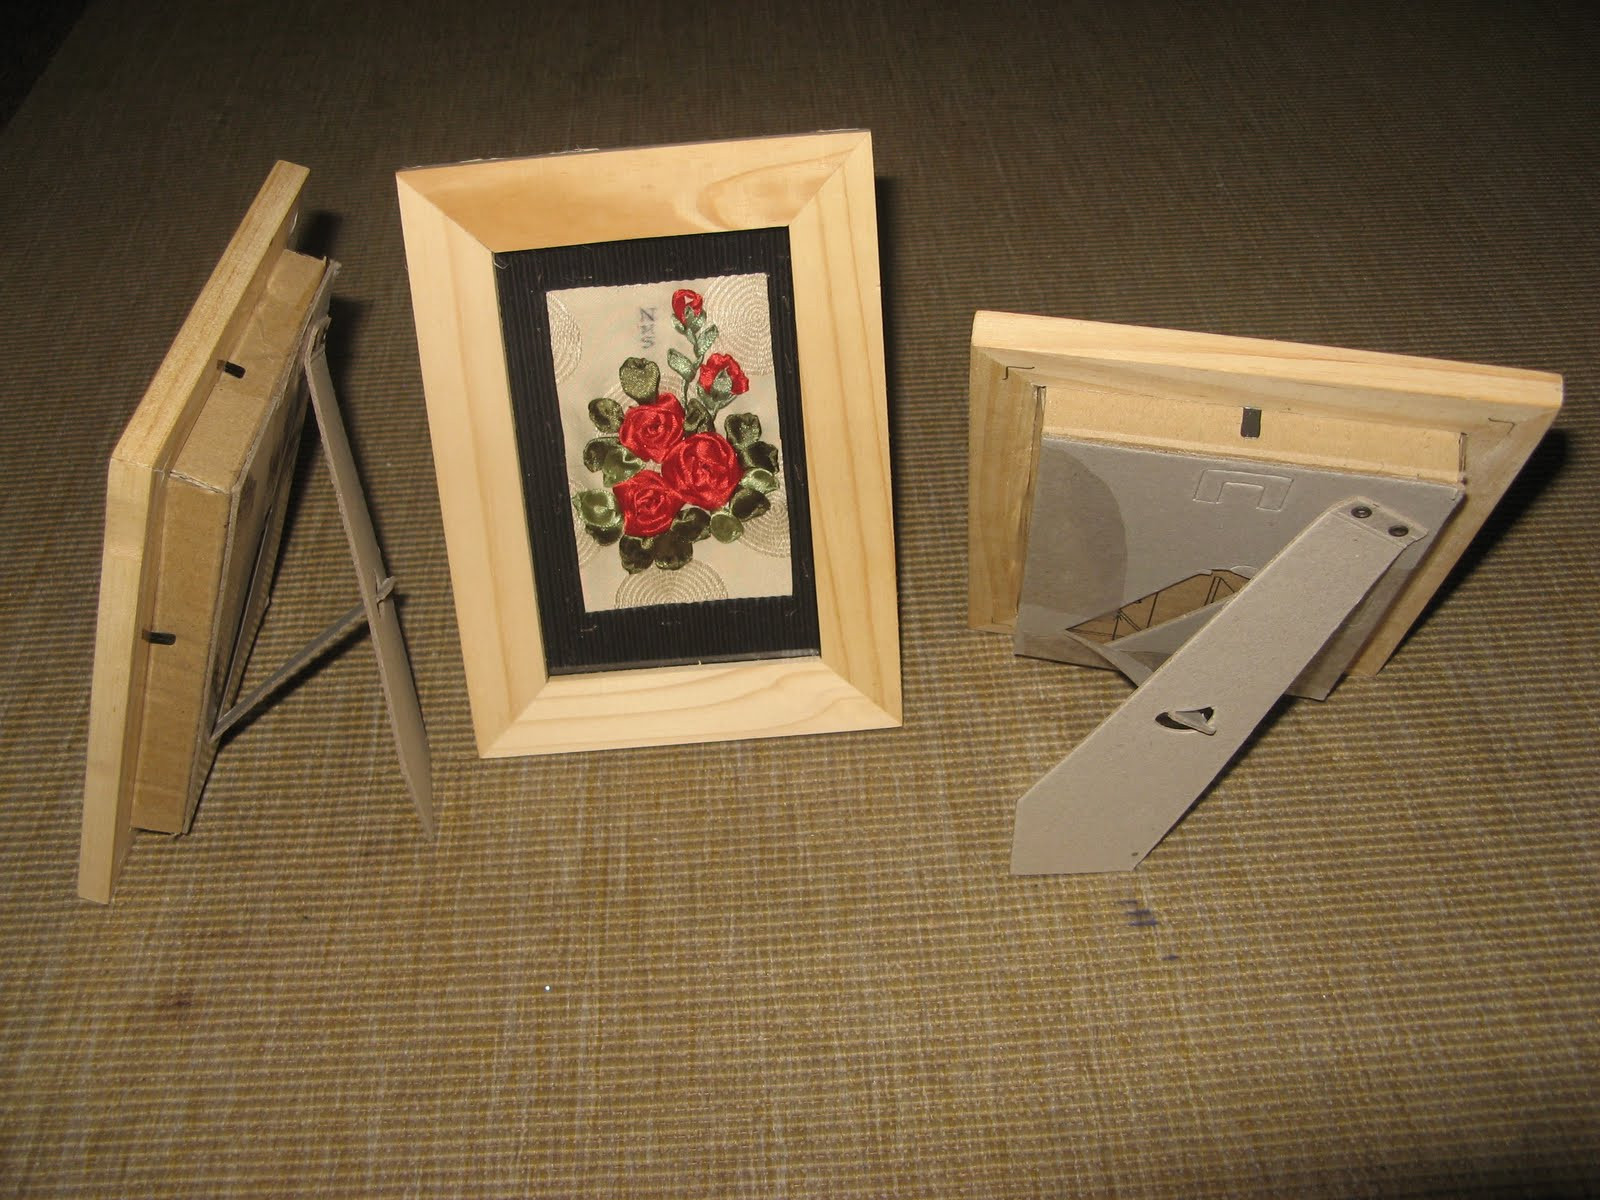 Best ideas about DIY Shadow Box Frame . Save or Pin Euphoria s Handcarved Rubberstamps How to make a DIY Now.